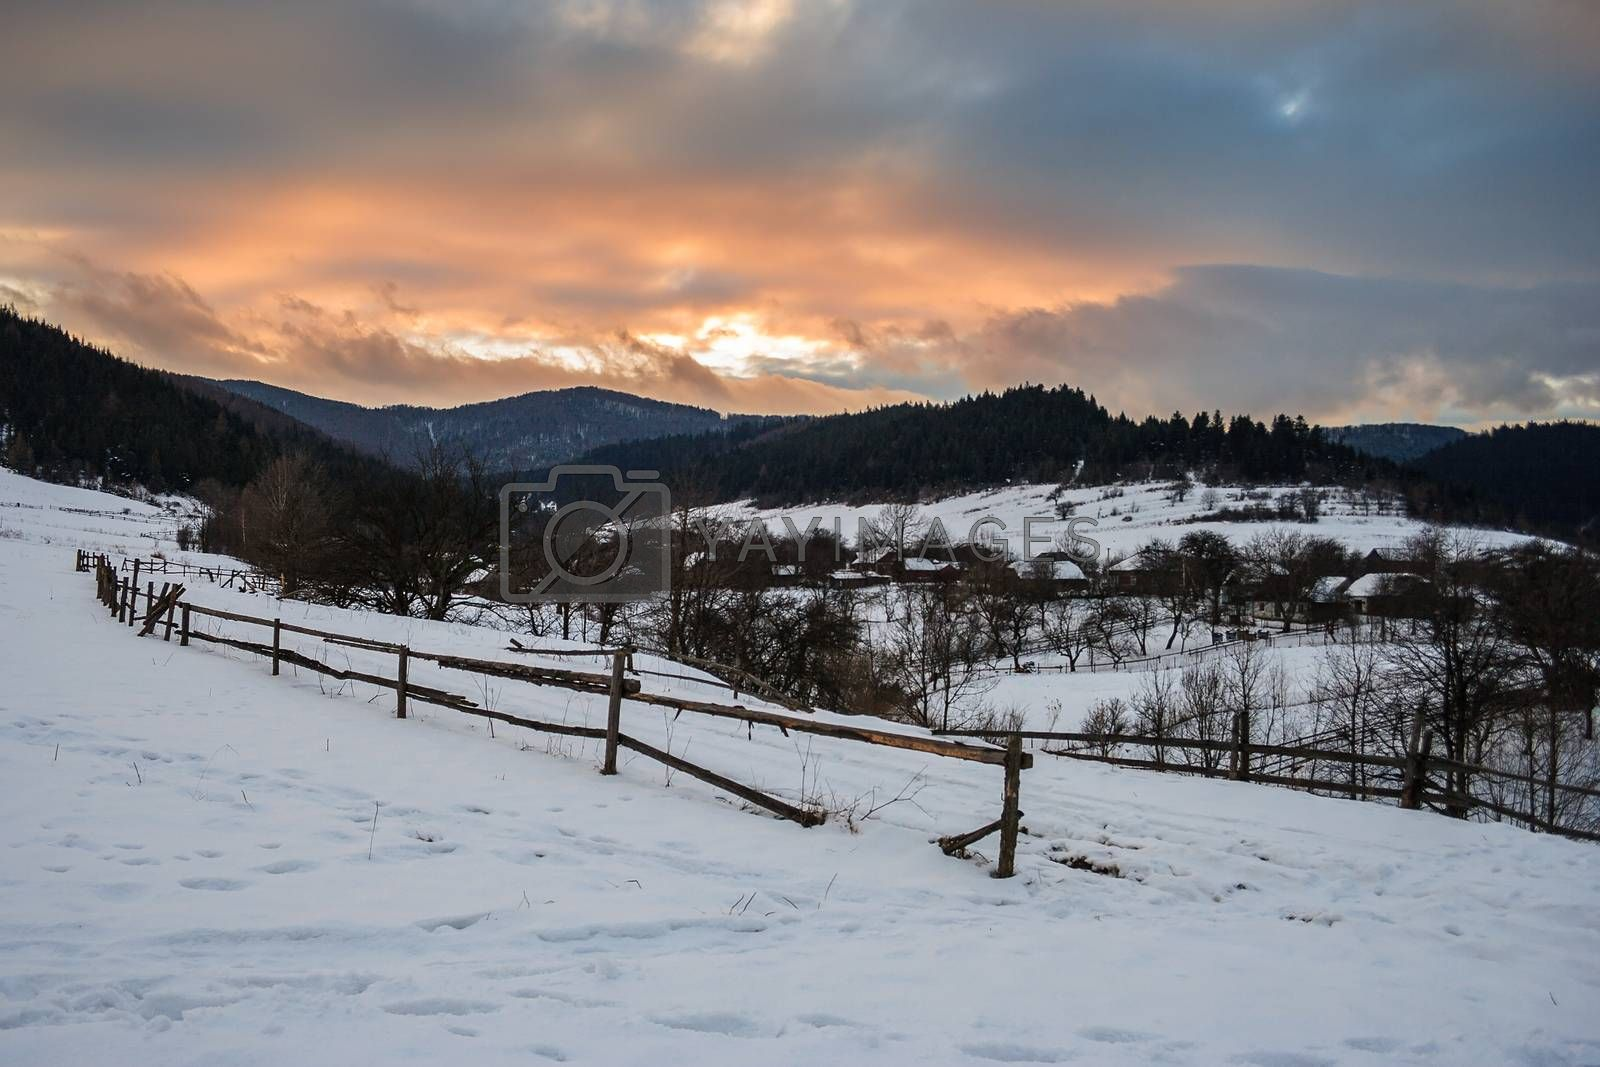 road to the village covered with snow in the mountains under a red winter sunset